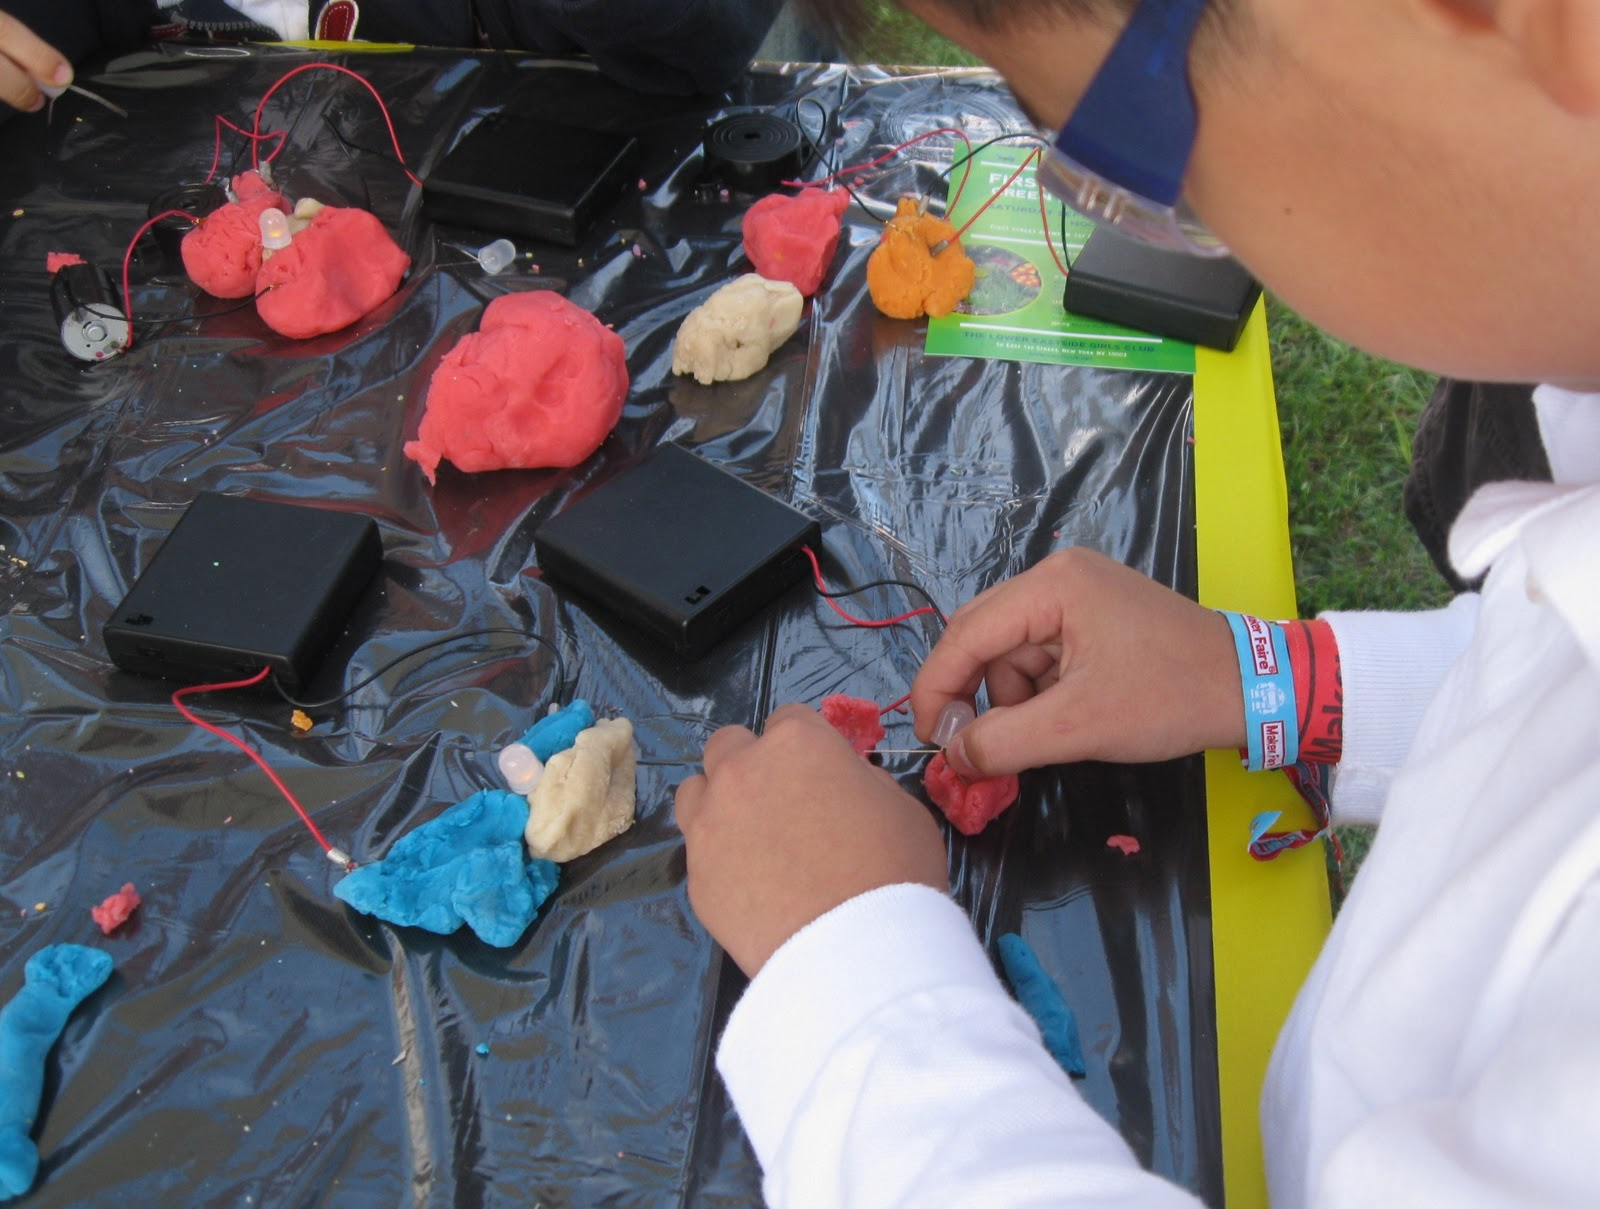 Toys As Tools Educational Toy Reviews Electrify Learning With Electrical Circuit Kits Kids And Parents Constantly Surrounded The University Of St Thomas Squishy Circuits Booth At Maker Faire In New York City